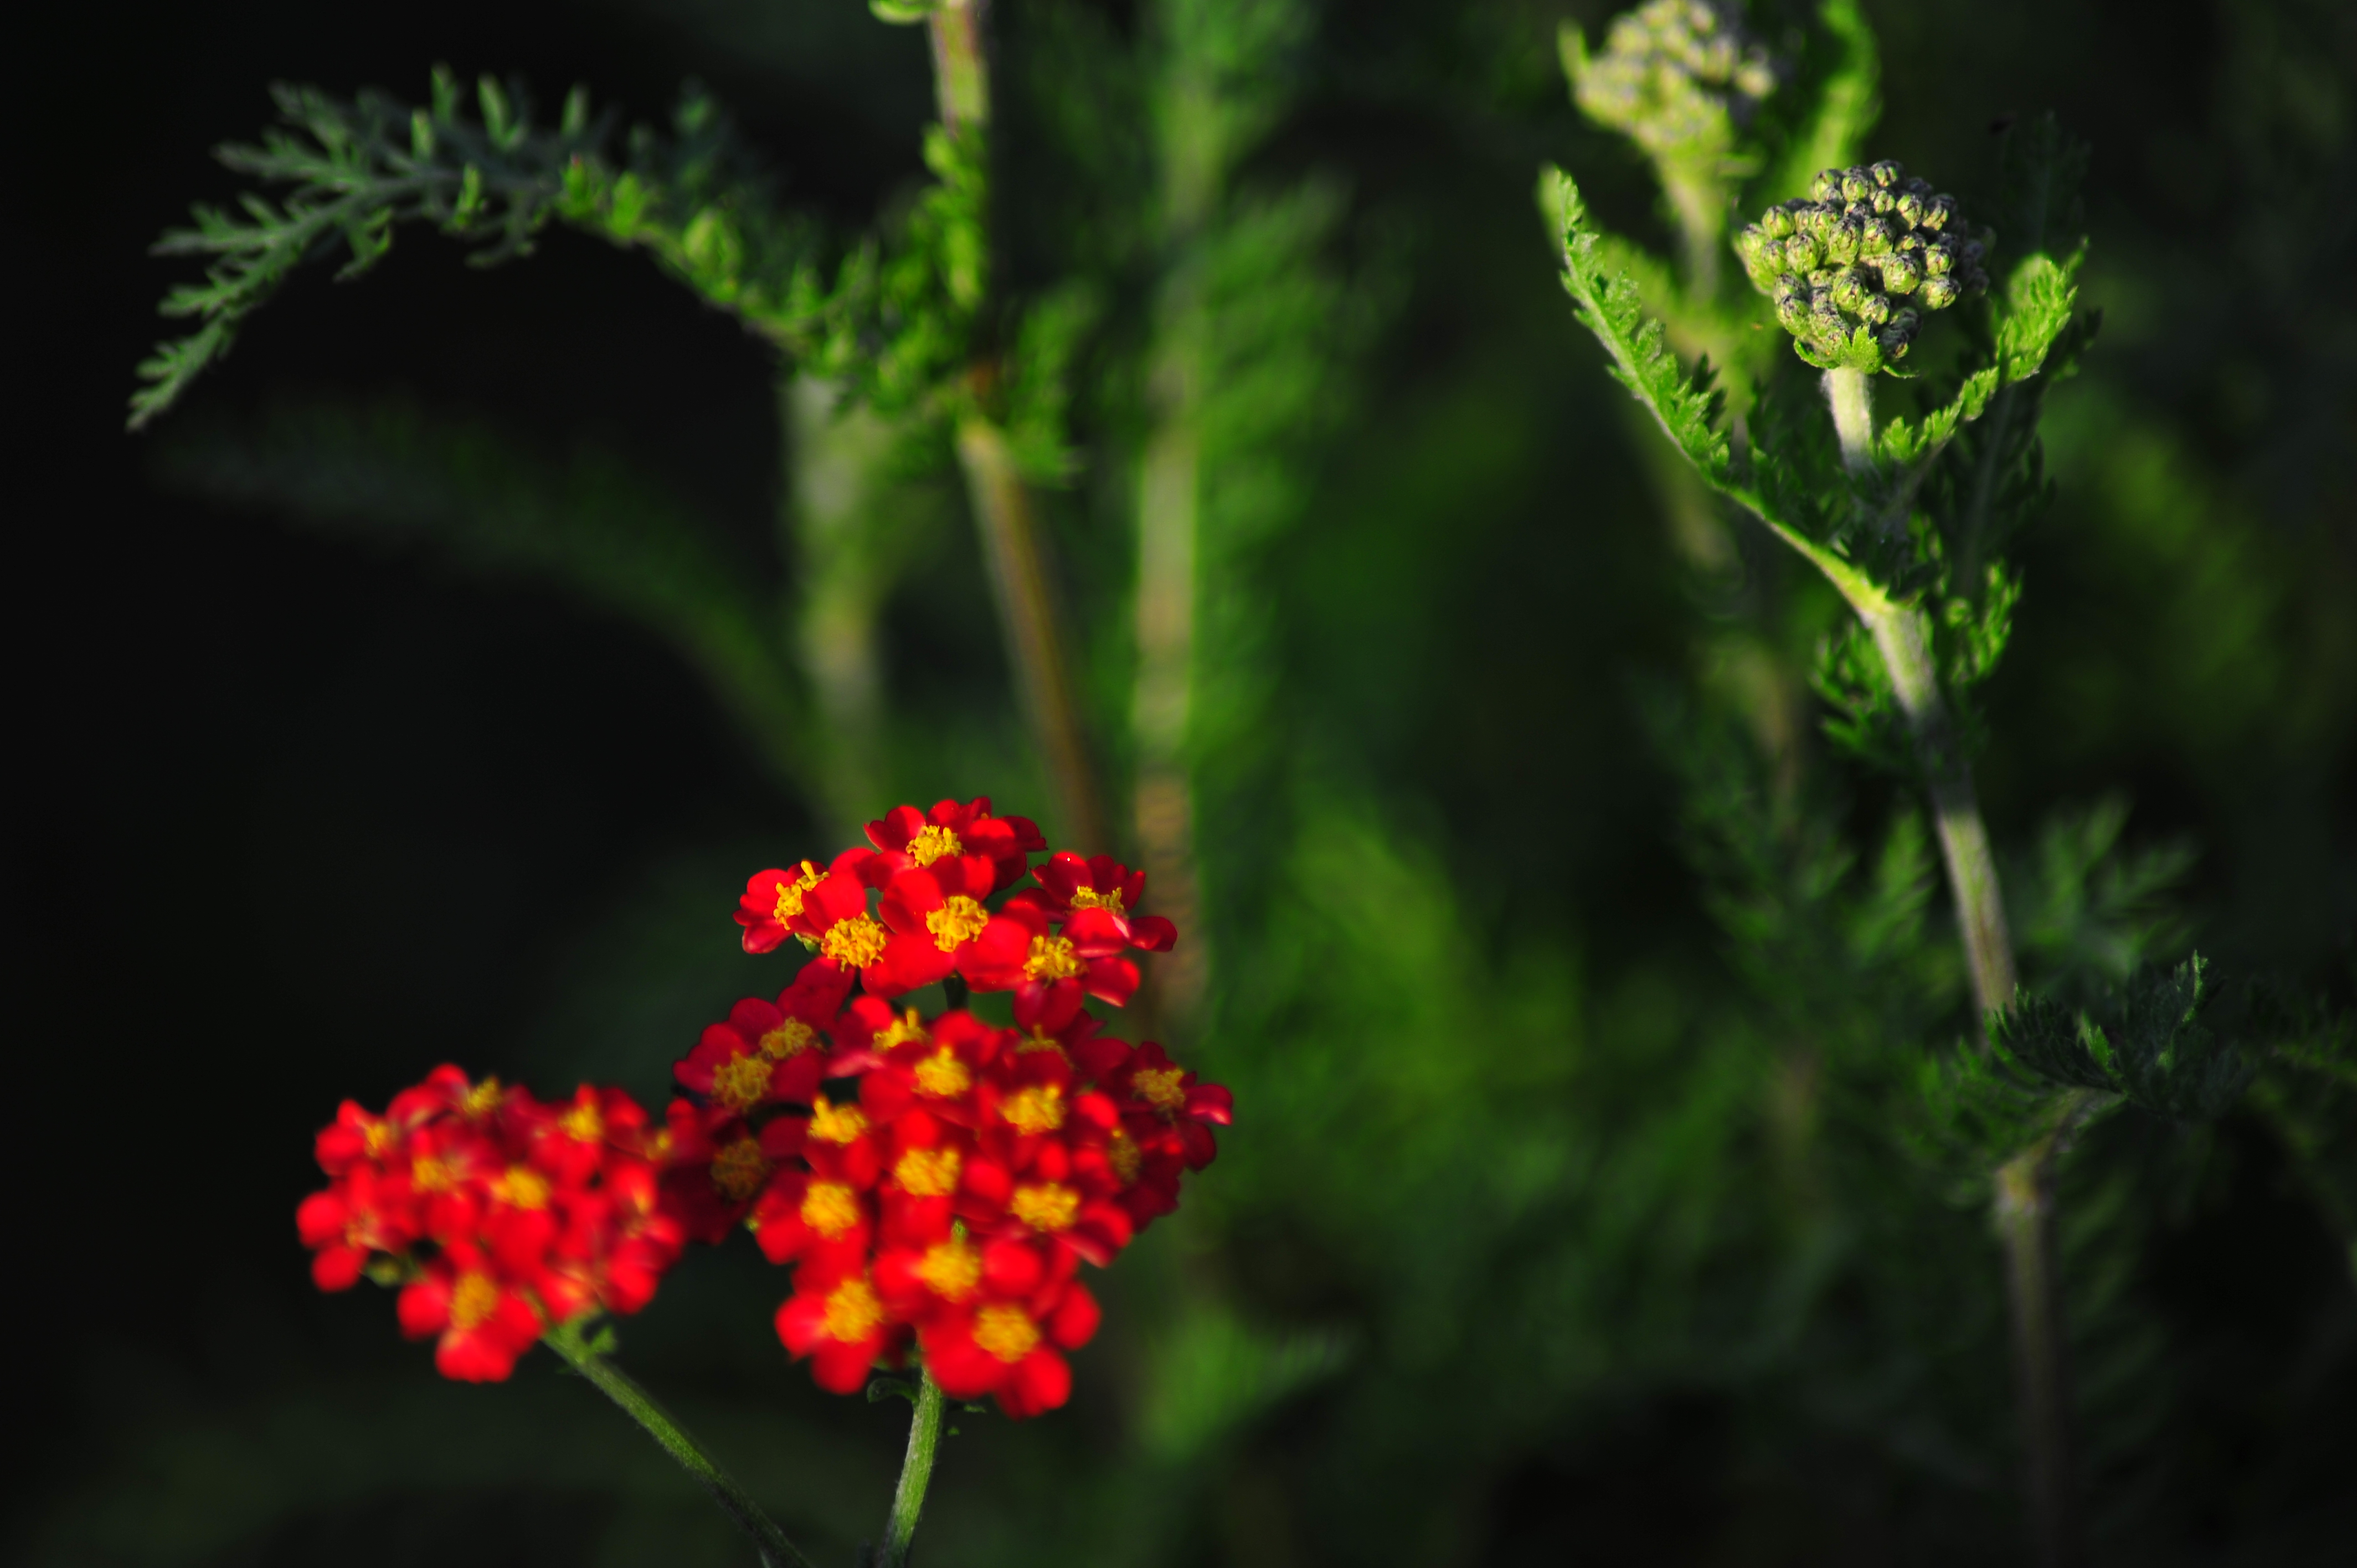 Little red flowers photo